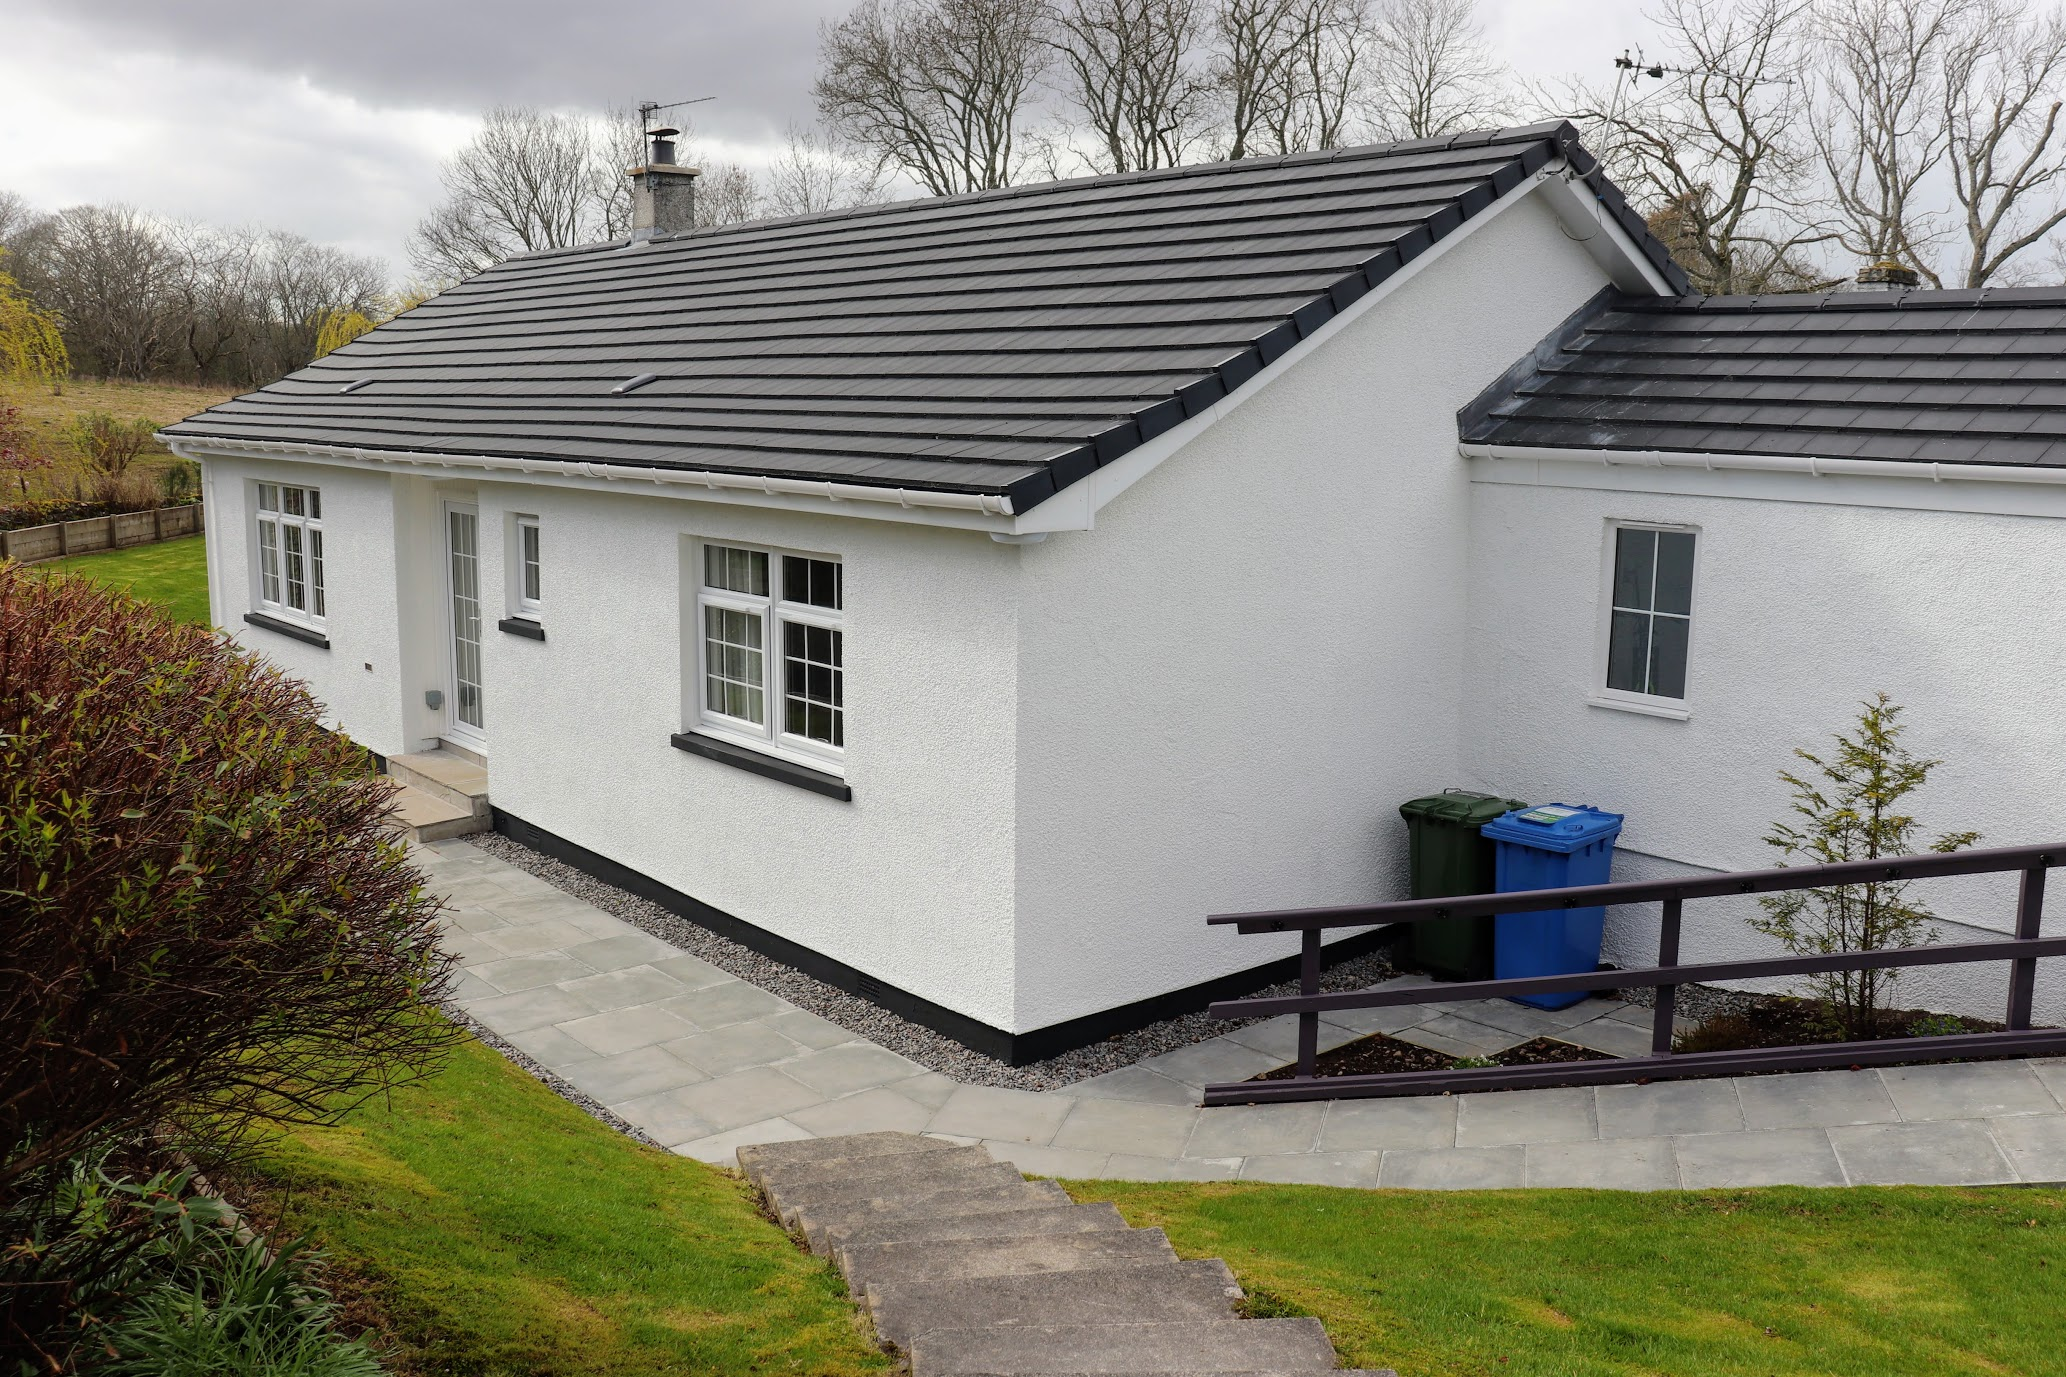 GLENDRUIDH COTTAGE - NOW SOLD, and will not be available for holiday rental from August 2019.A HUGE THANK YOU TO ALL OUR CUSTOMERS!